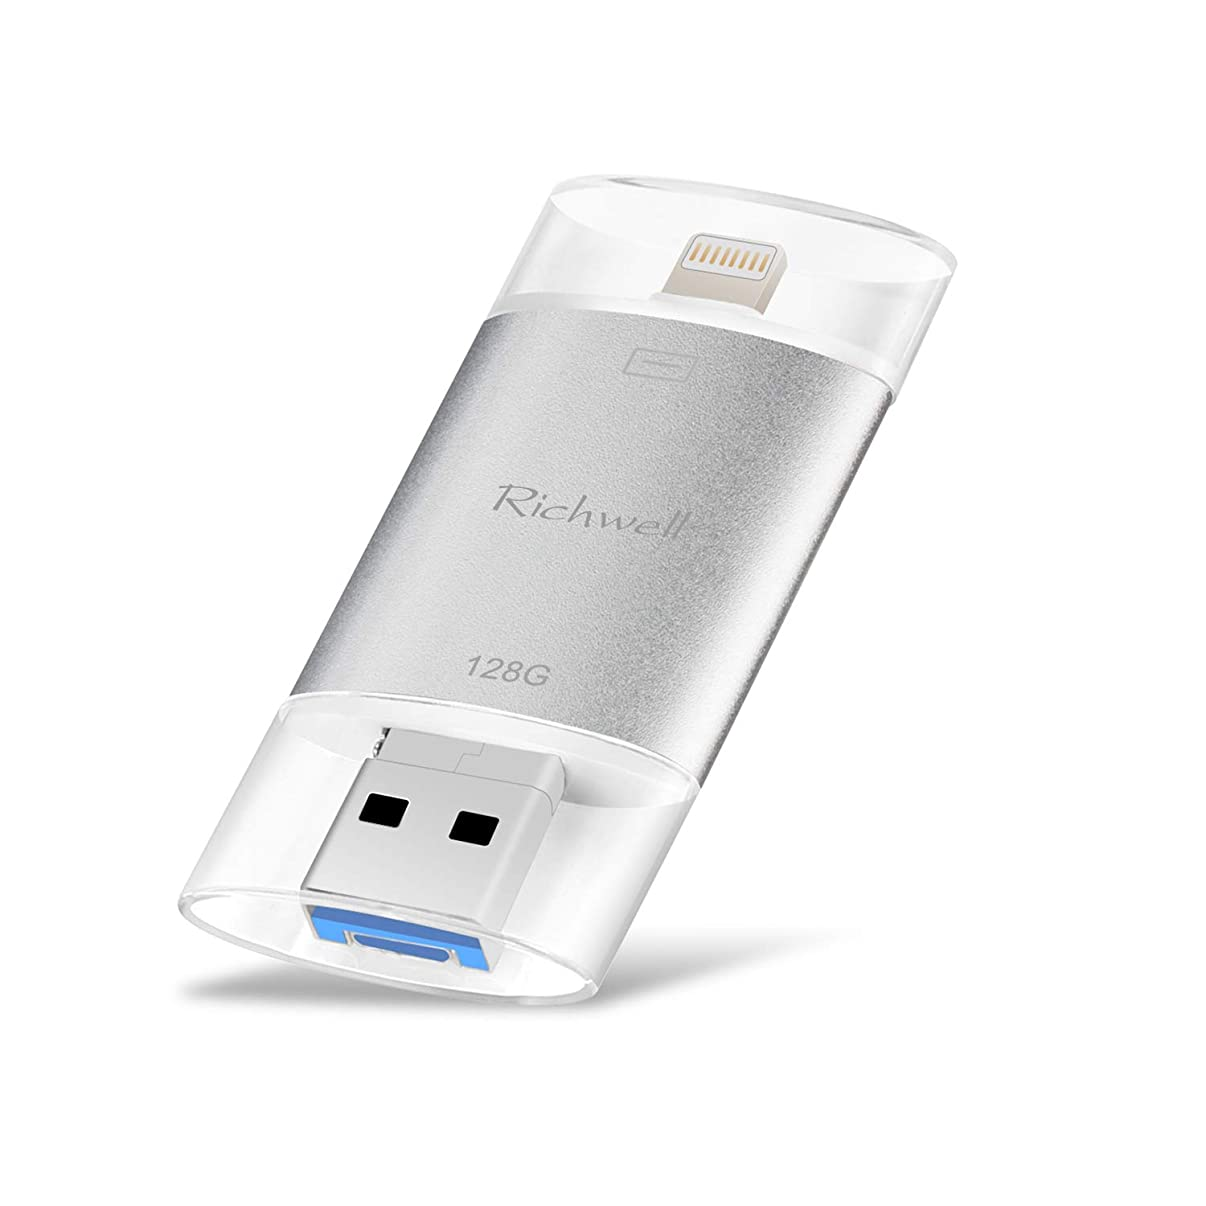 USB Drive for iPhone Flash Drive 128GB USB3.0 Memory Stick External Storage 3in1 Thumb Drive Richwell Compatible iPhone iPad Mac Android and Compute(Silevr128G-SG)